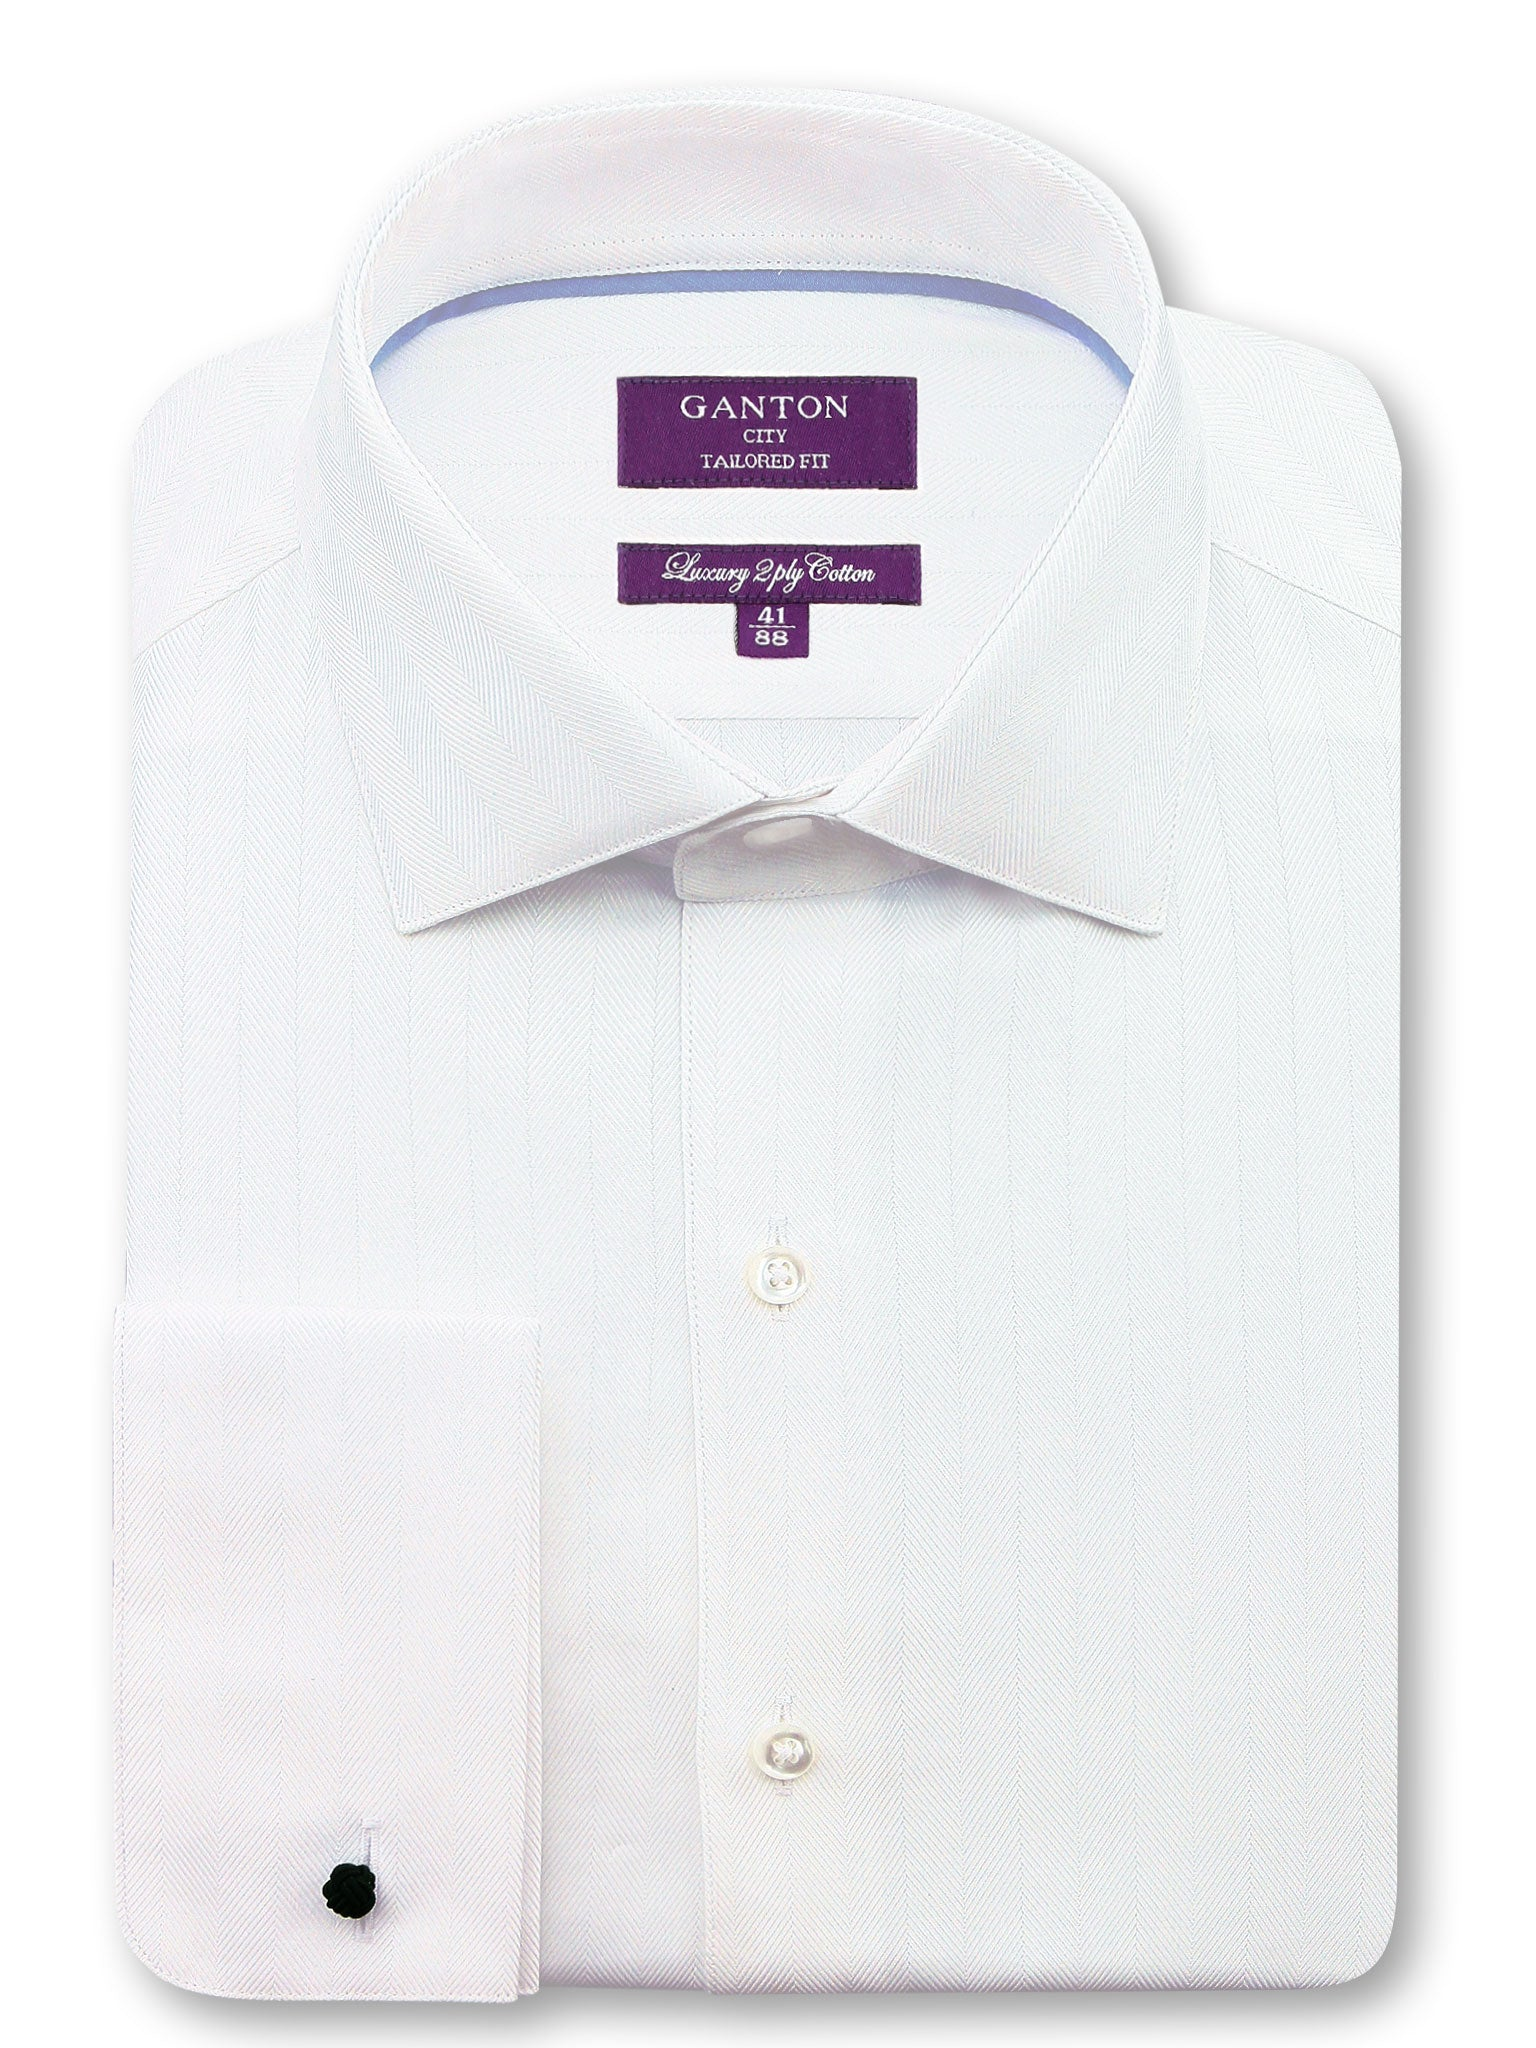 All White Textured Tailored Fit Oliver Luxury 2 Ply Cotton Shirt